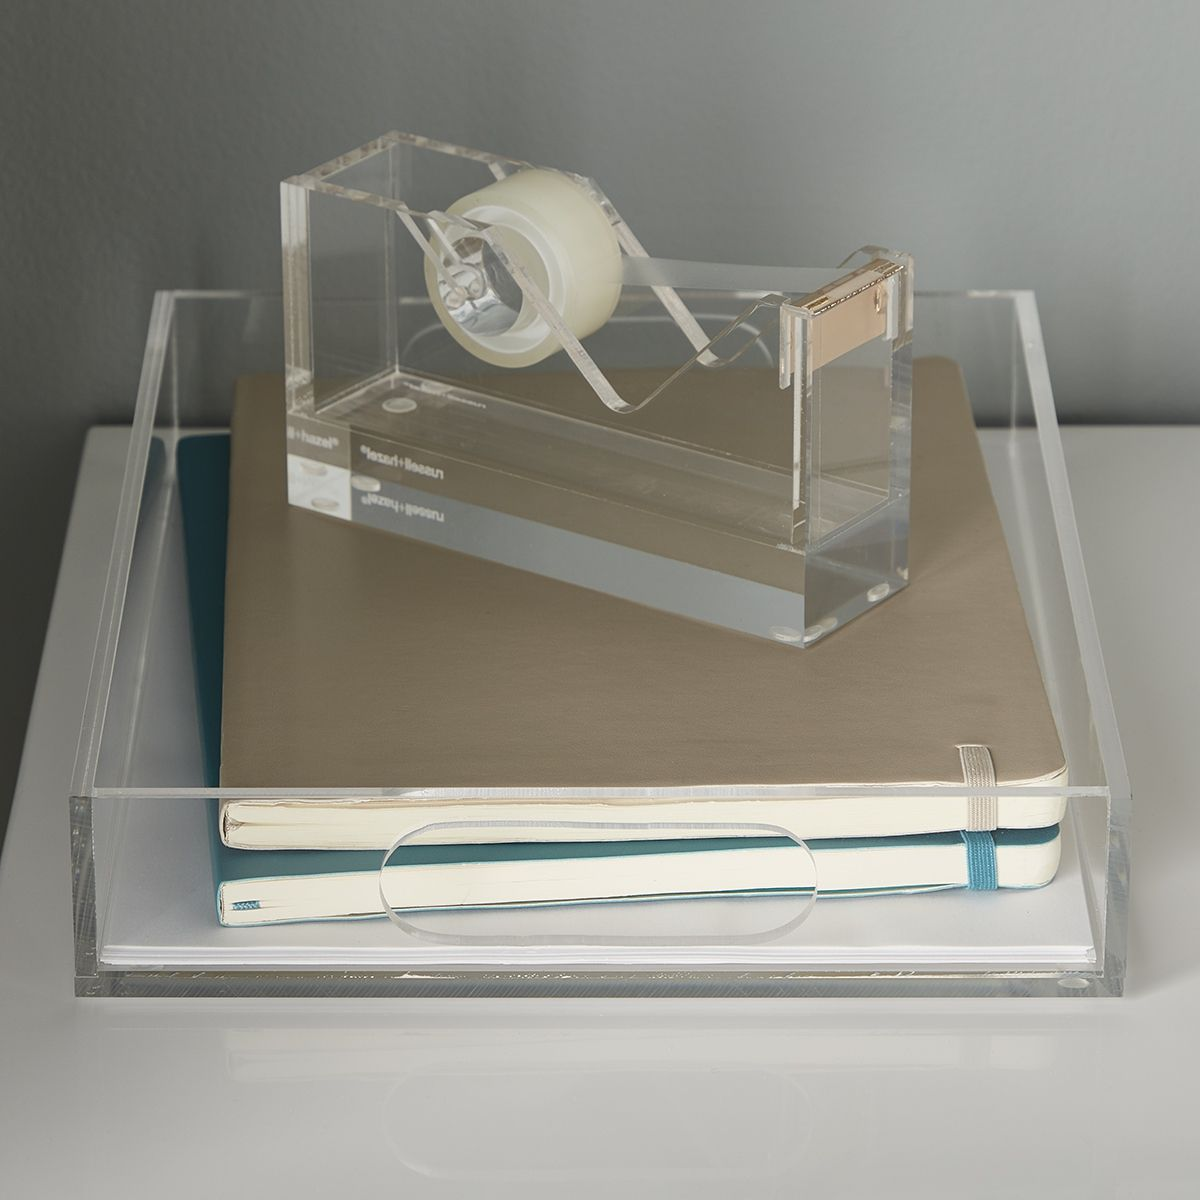 Acrylic Desk Accessories Are An Easy And Stylish Way To Keep Your